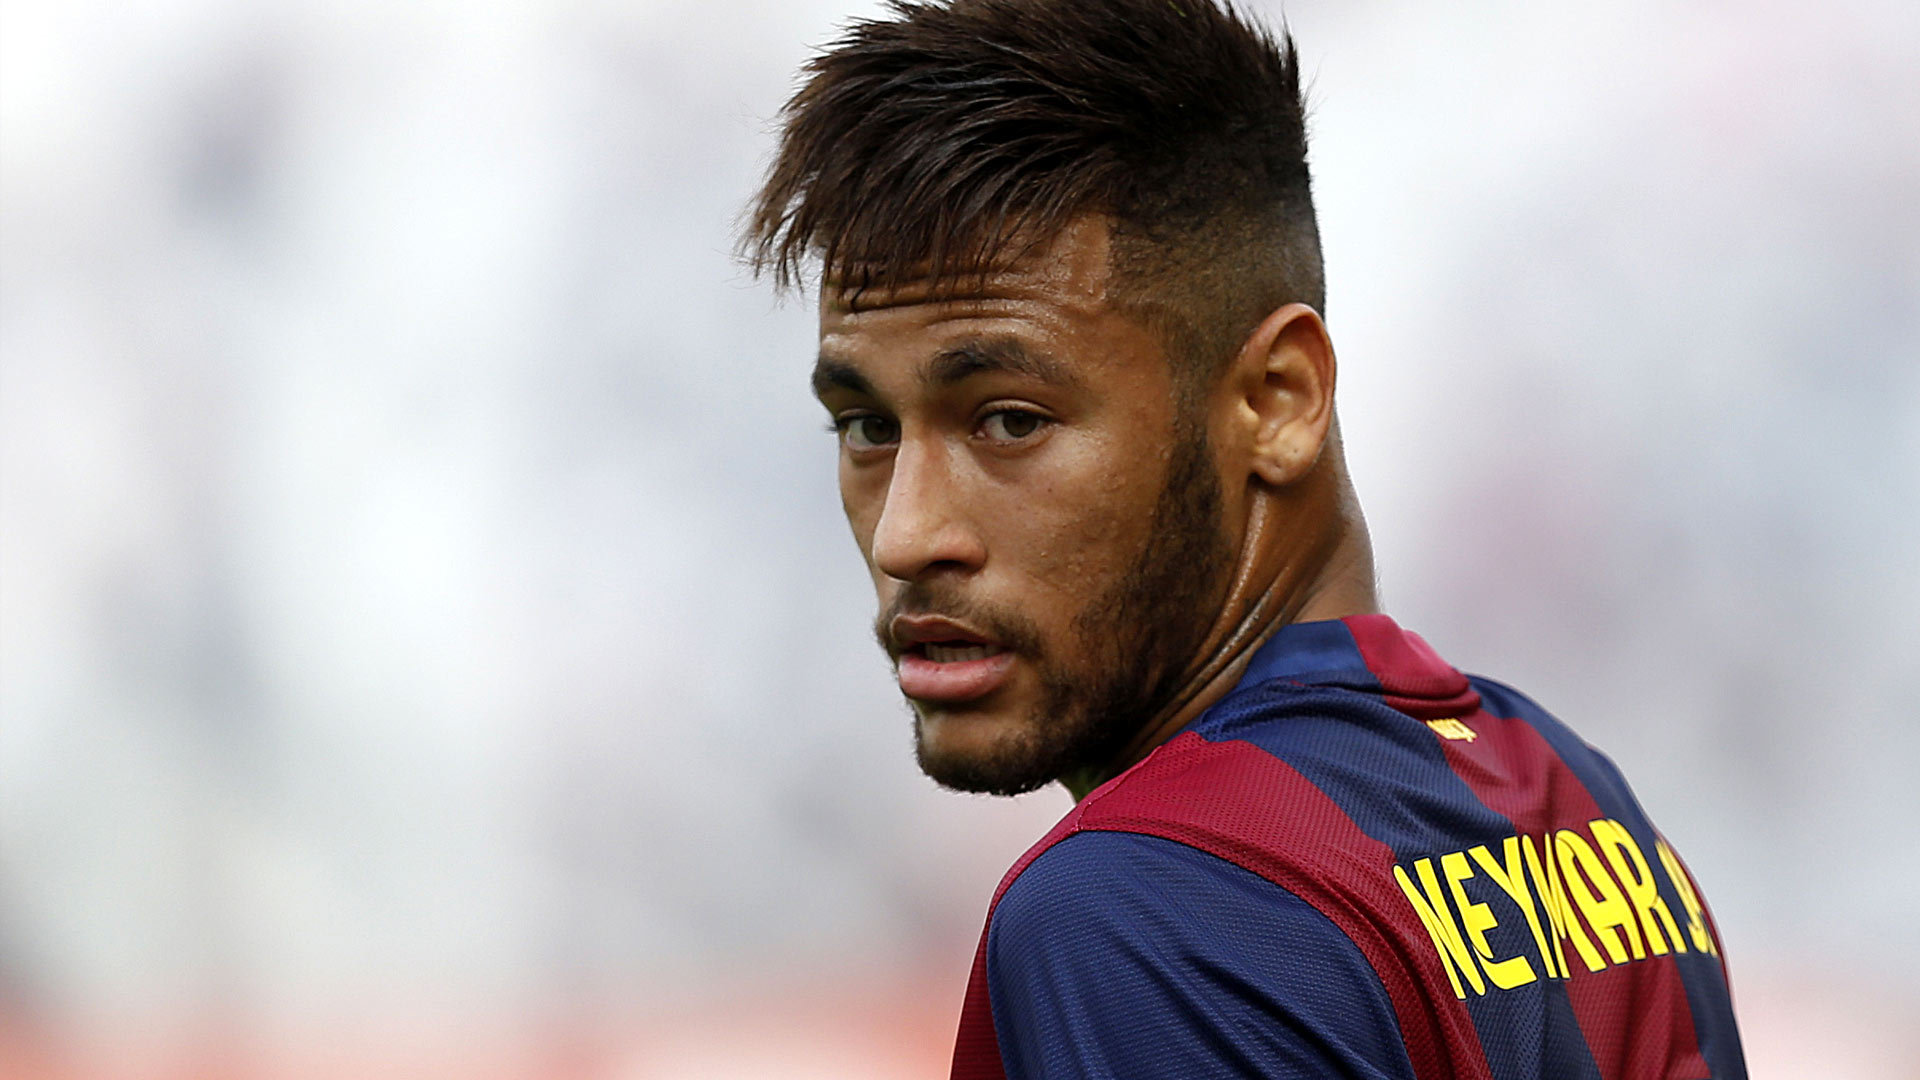 Hd wallpaper neymar - Hd Wallpaper Neymar 78